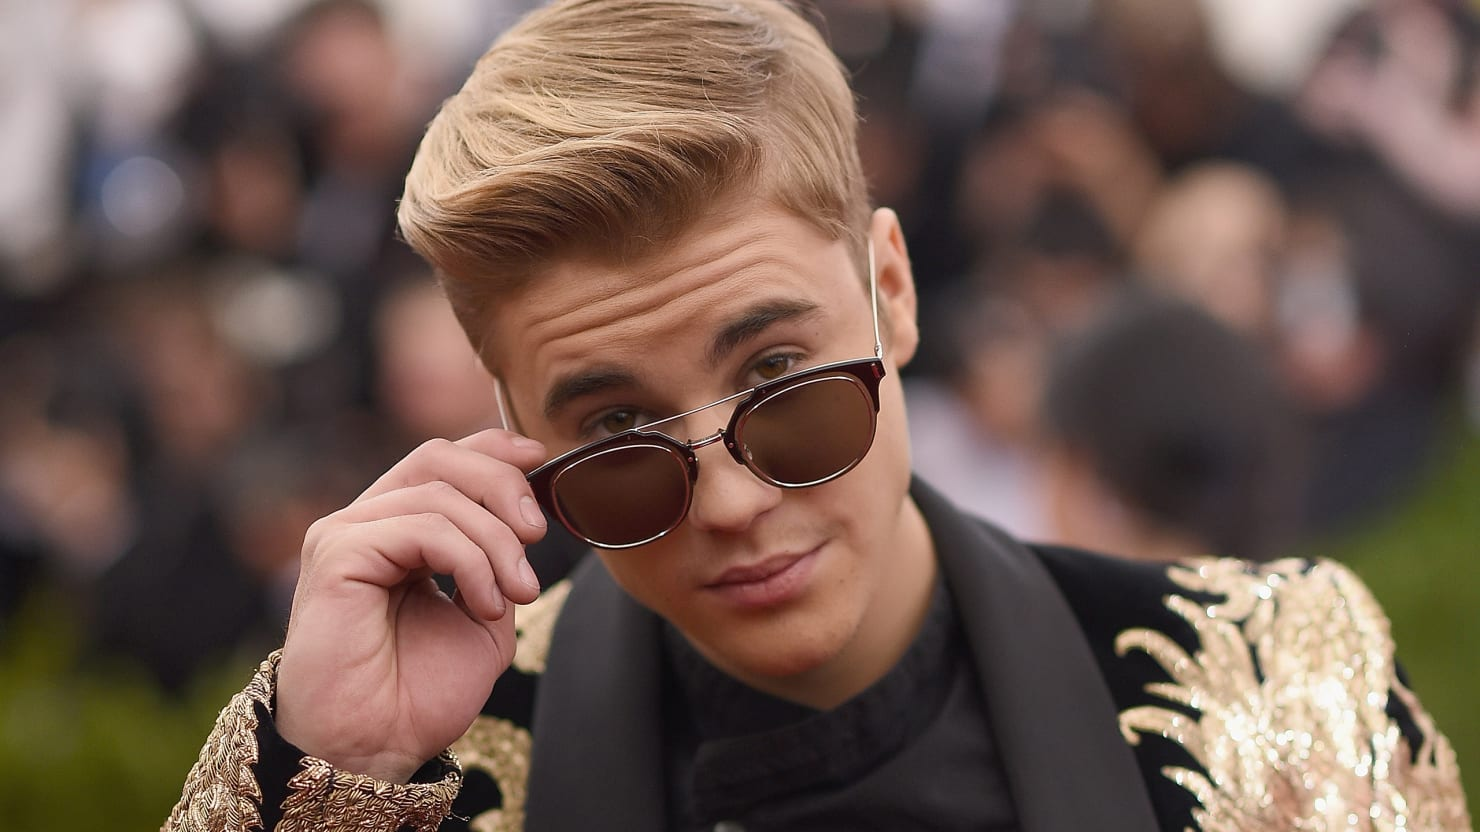 Justin Bieber Has a Huge Penis! (But Maybe We Shouldn't Know That.)